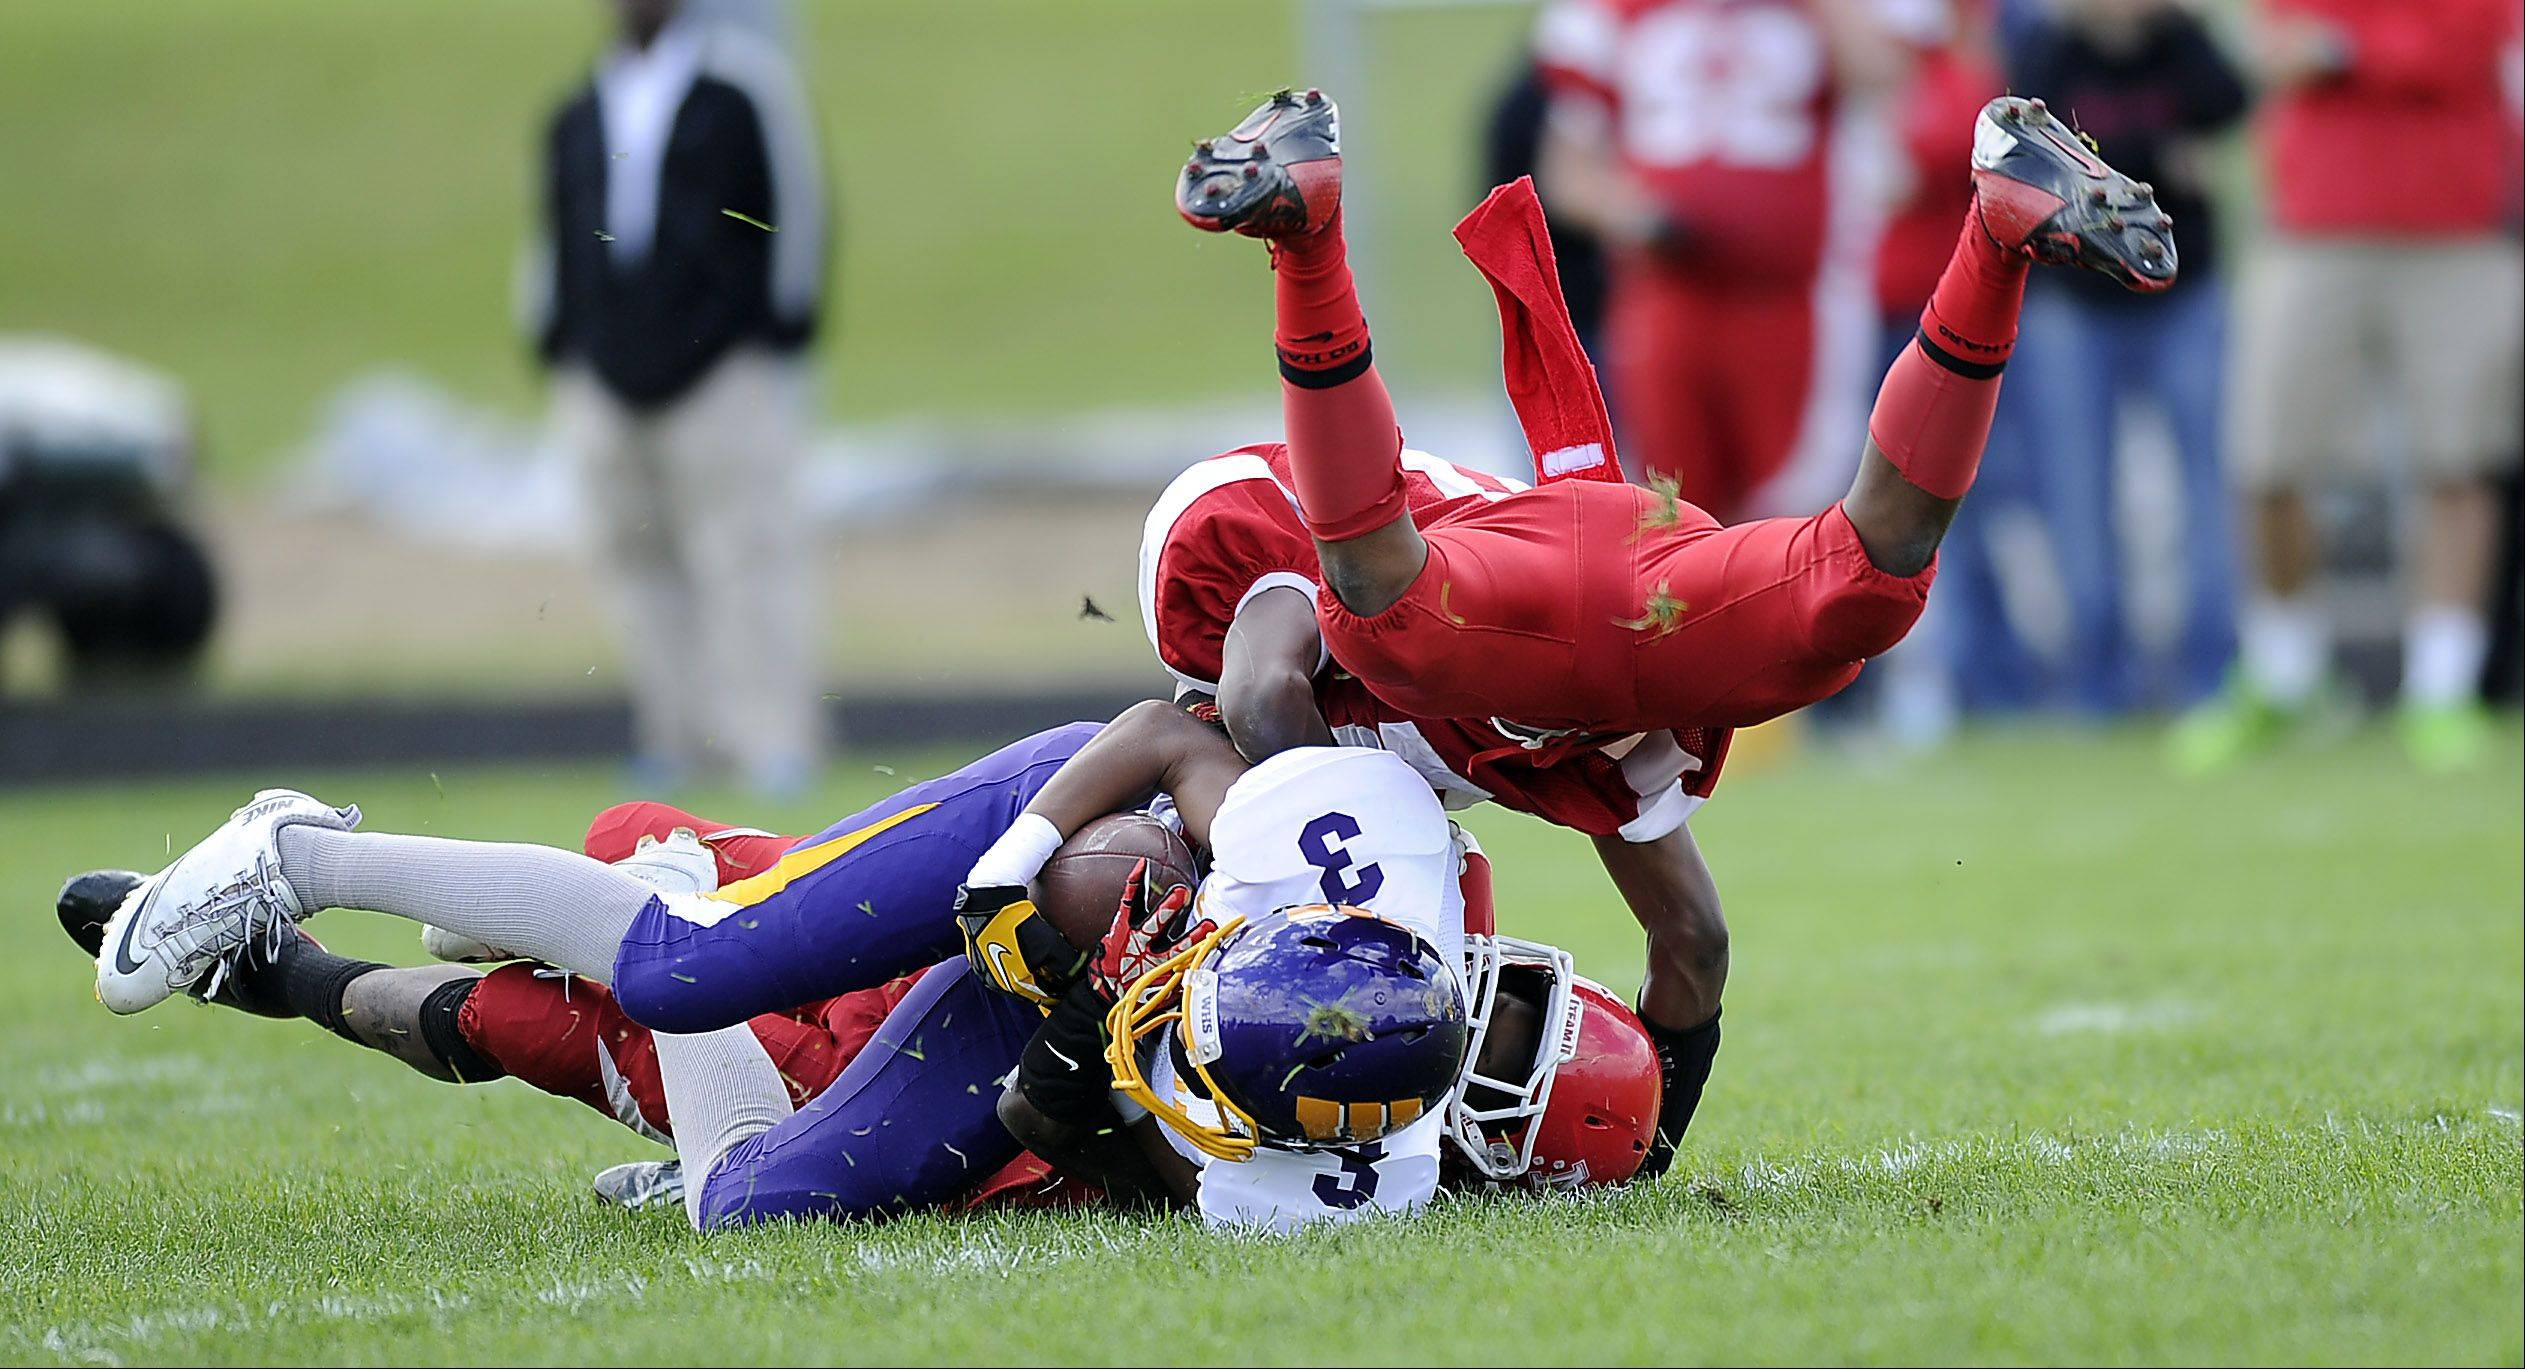 Wauconda's Josh Anderson is tackled by Tazari Bryant for short yardage Saturday in North Chicago.